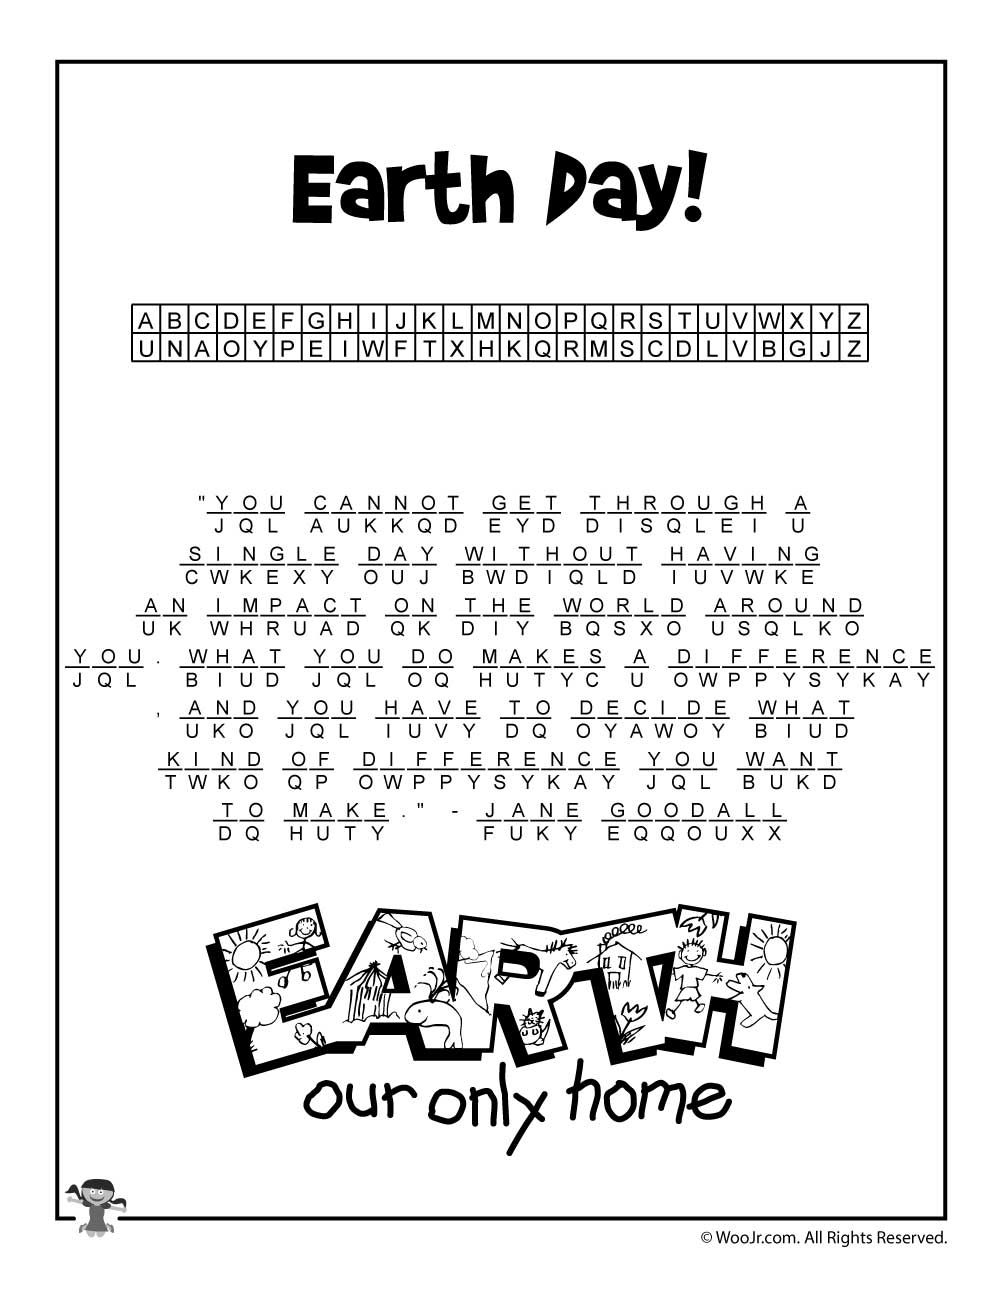 Earth Day Cryptogram Puzzle Solution | Class Decorations | Earth Day - Printable Puzzles Cryptograms